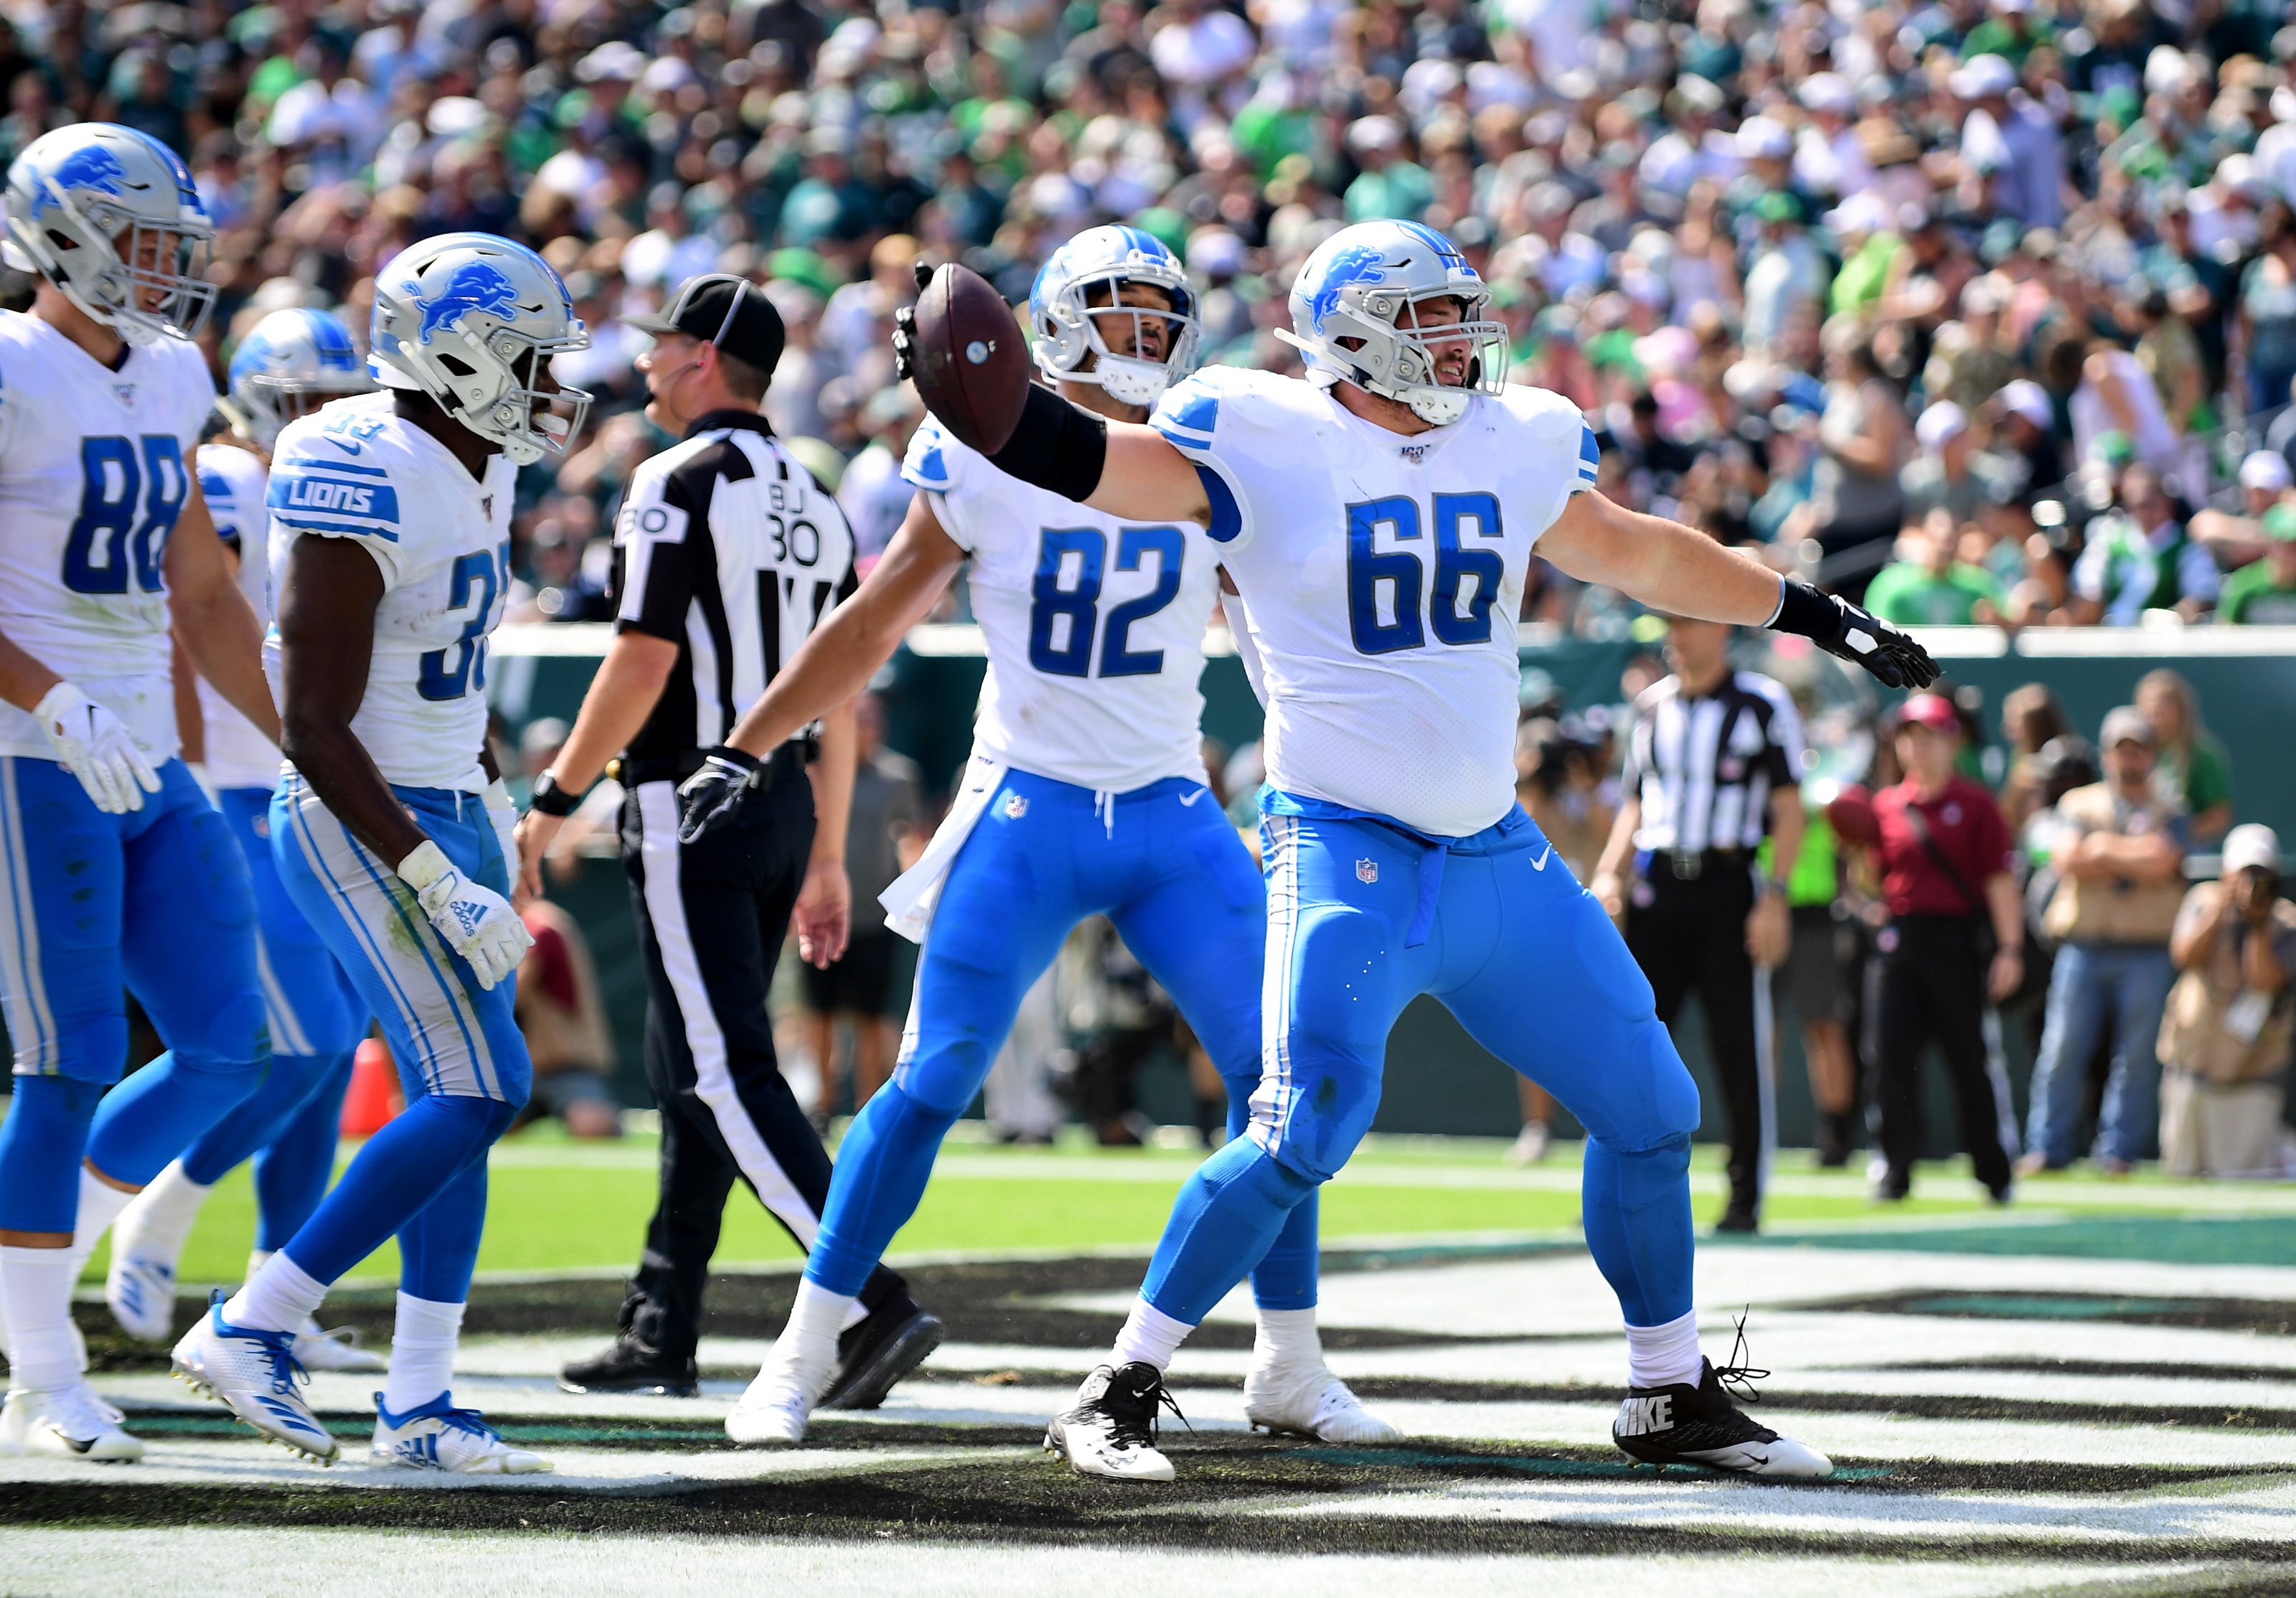 Detroit Lions: Most glaring need is now on offense, not defense